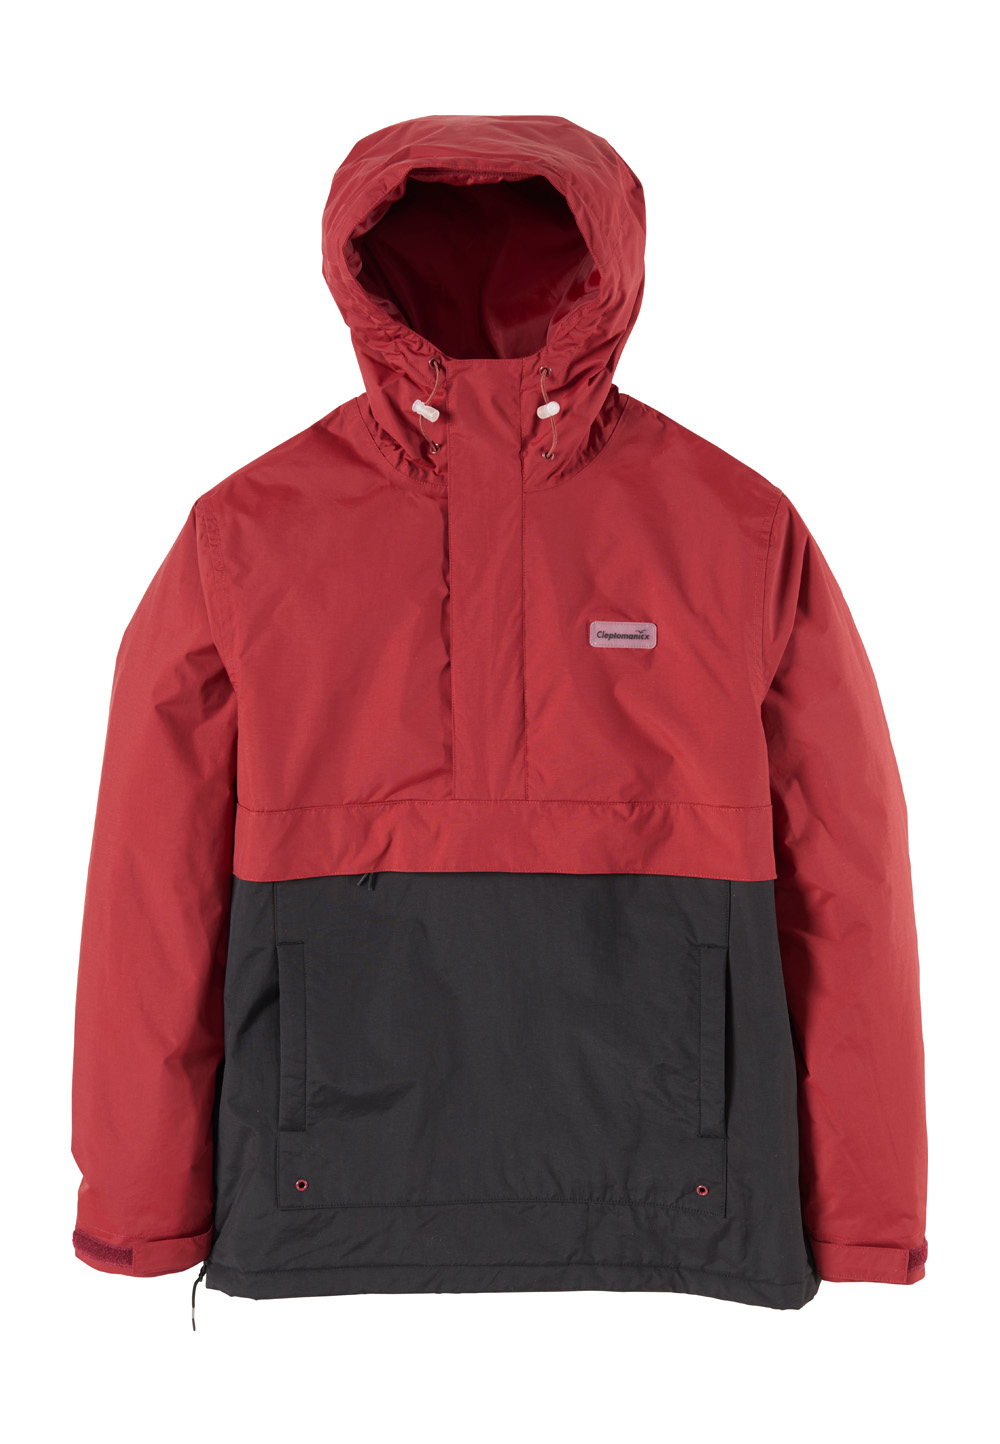 Cleptomanicx Windbreaker City HHooded Light 2, Kapuze rot | Sportbekleidung > Sportjacken > Windbreaker | Rot | Cleptomanicx